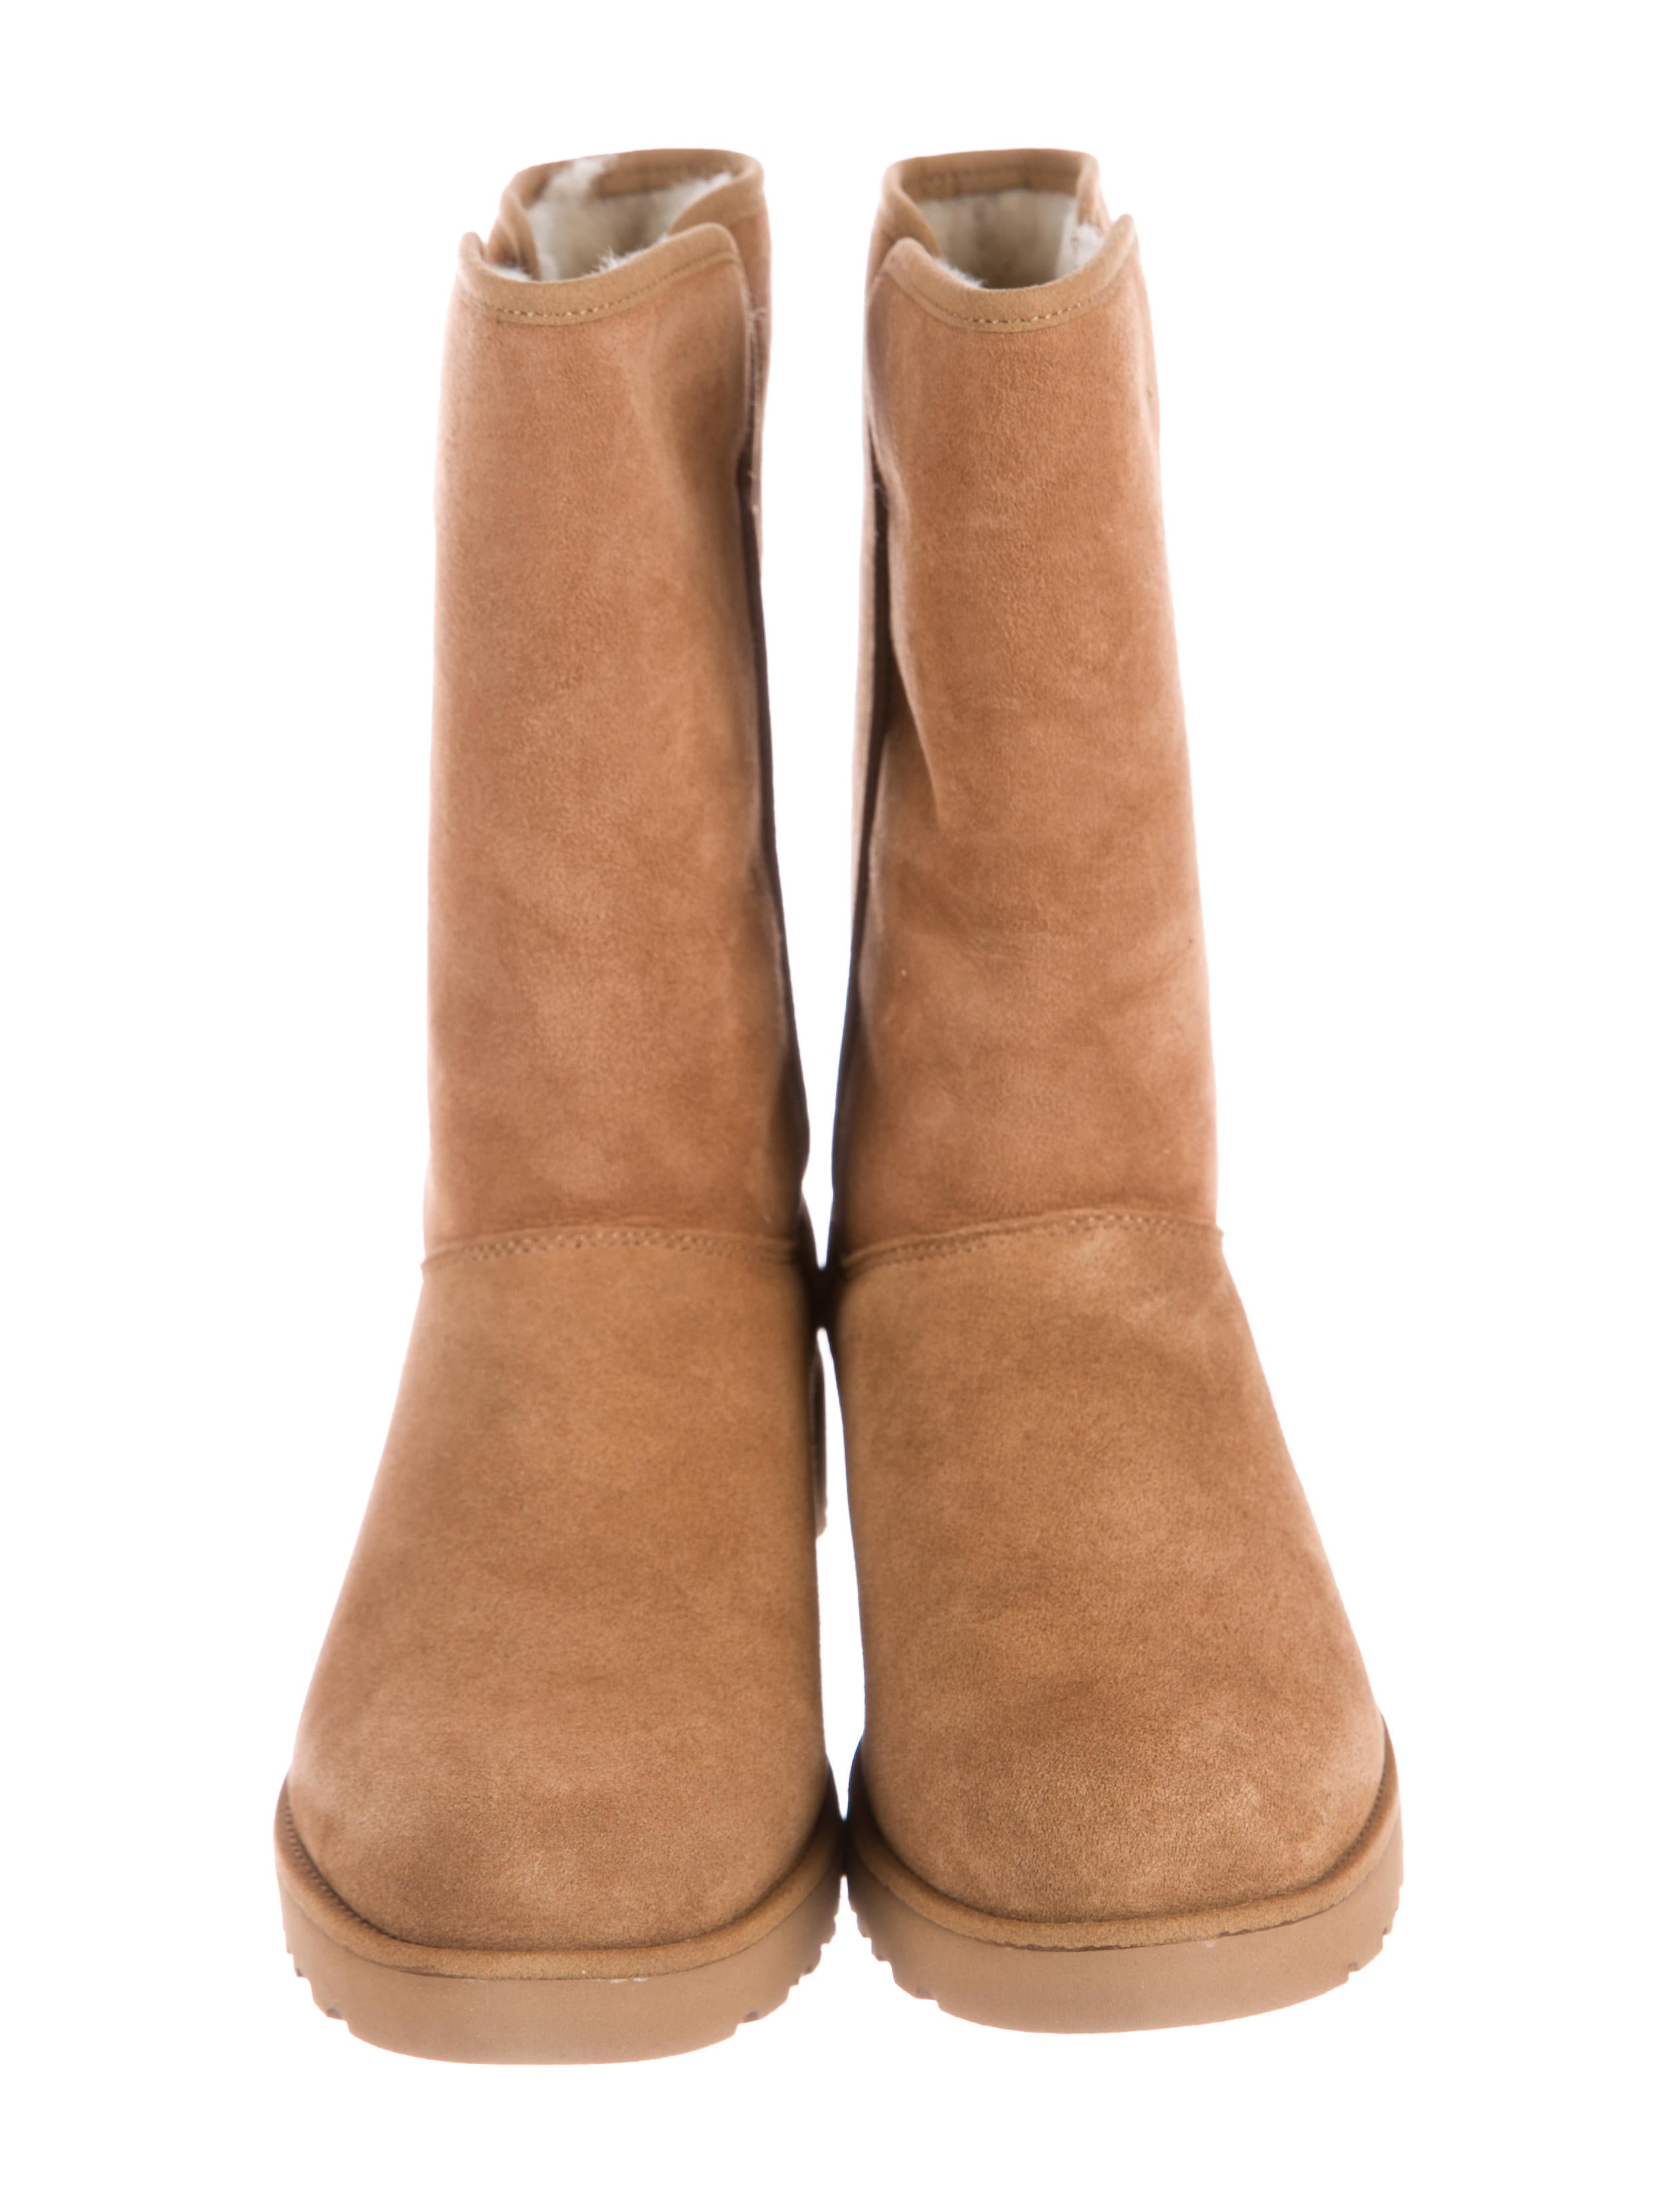 UGG Australia Amie Suede Boots w/ Tags free shipping genuine for cheap online recommend for sale cheap sale new BEBpoIl7H